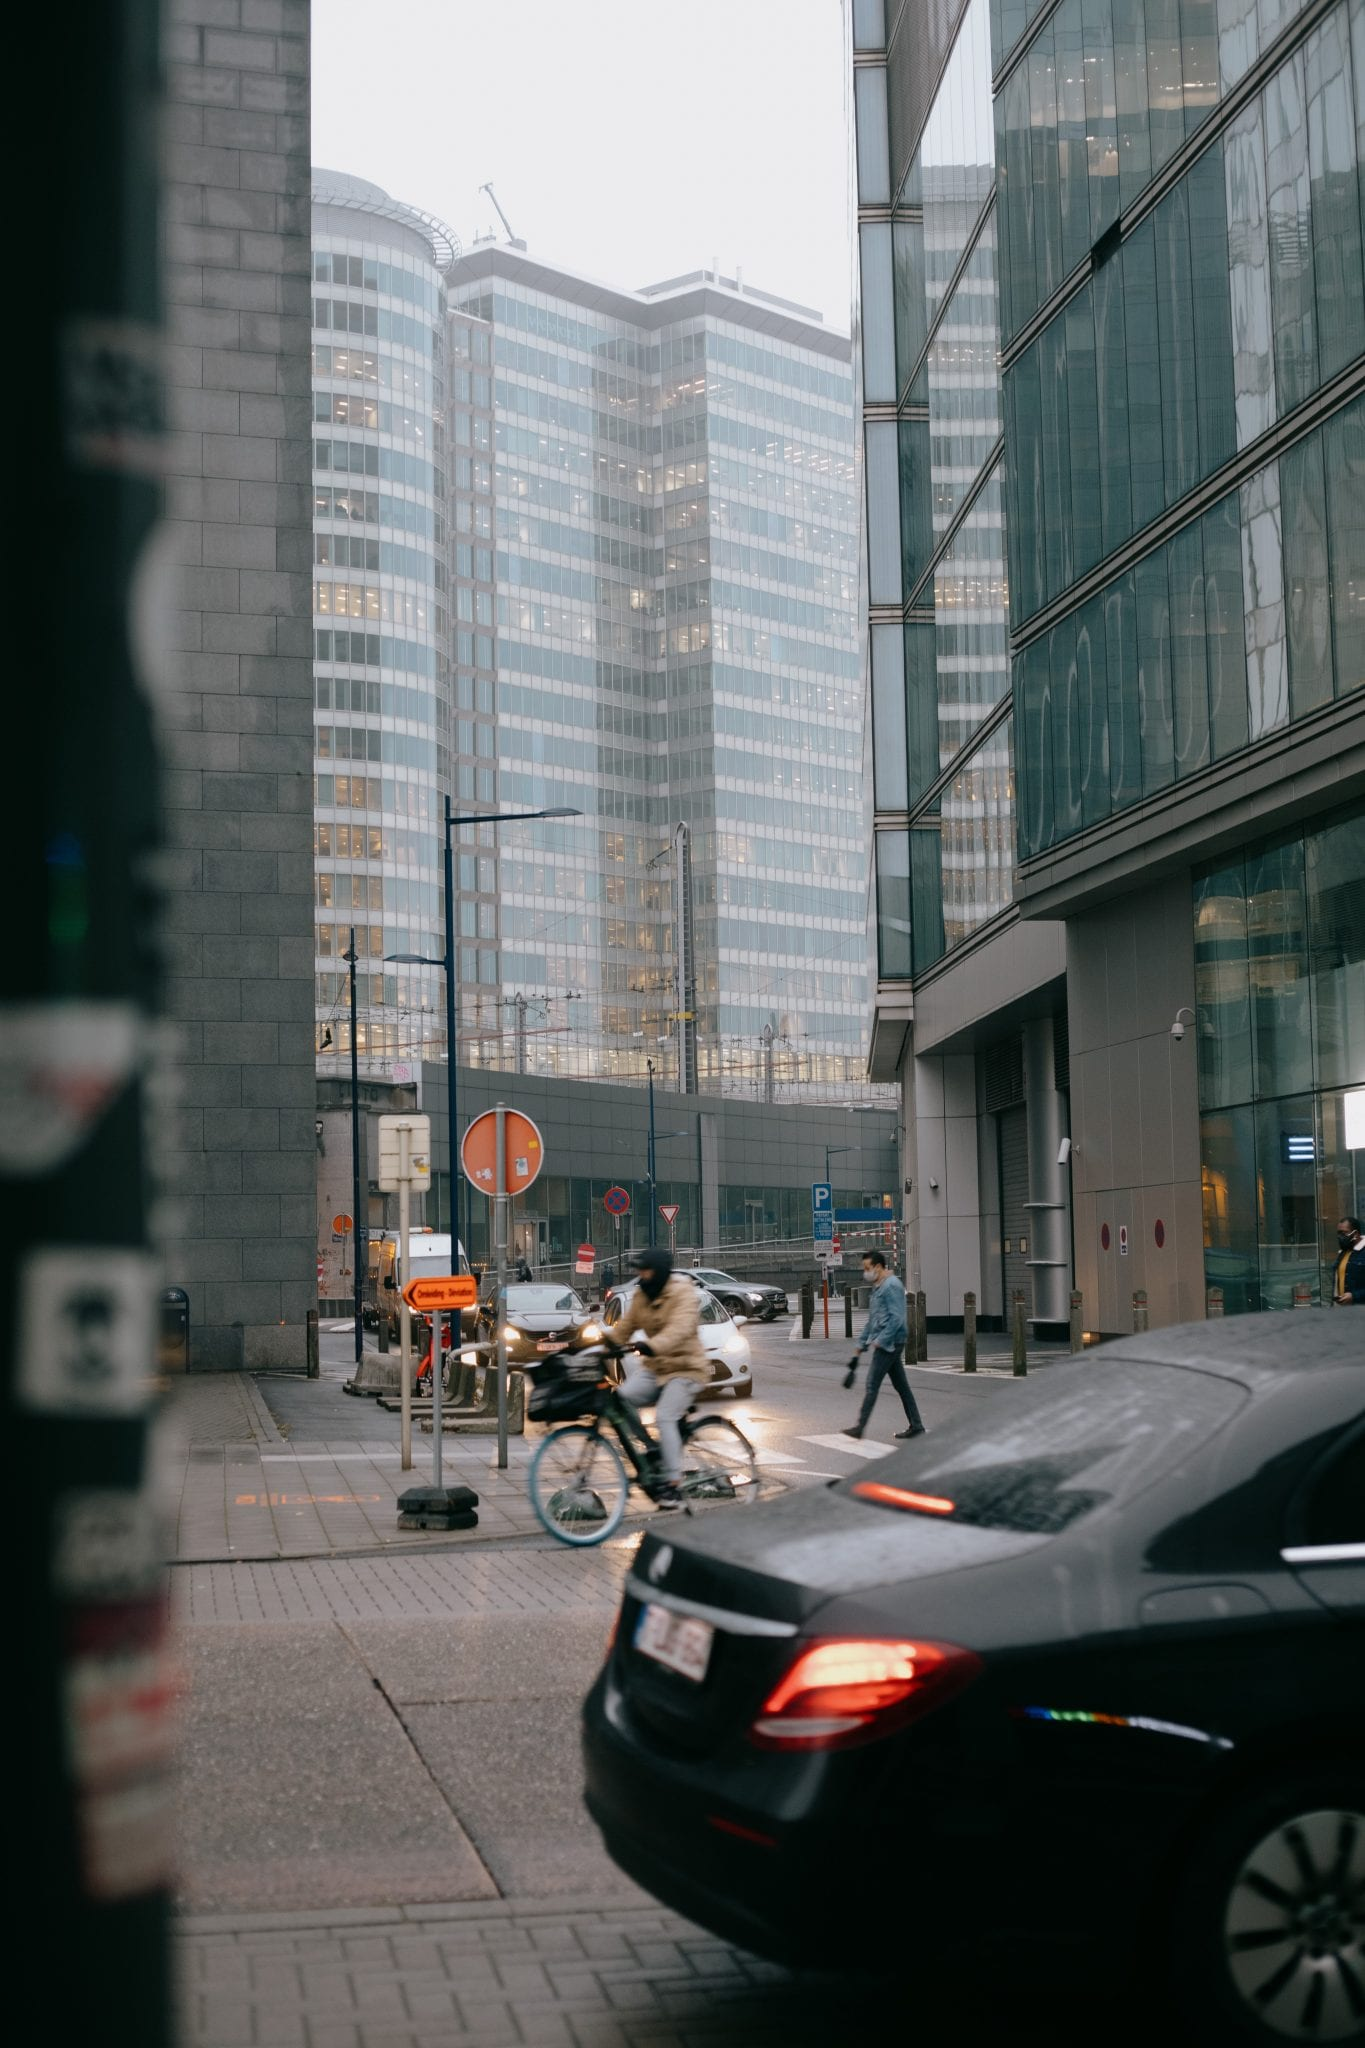 people riding motorcycle on road near high rise buildings during daytime